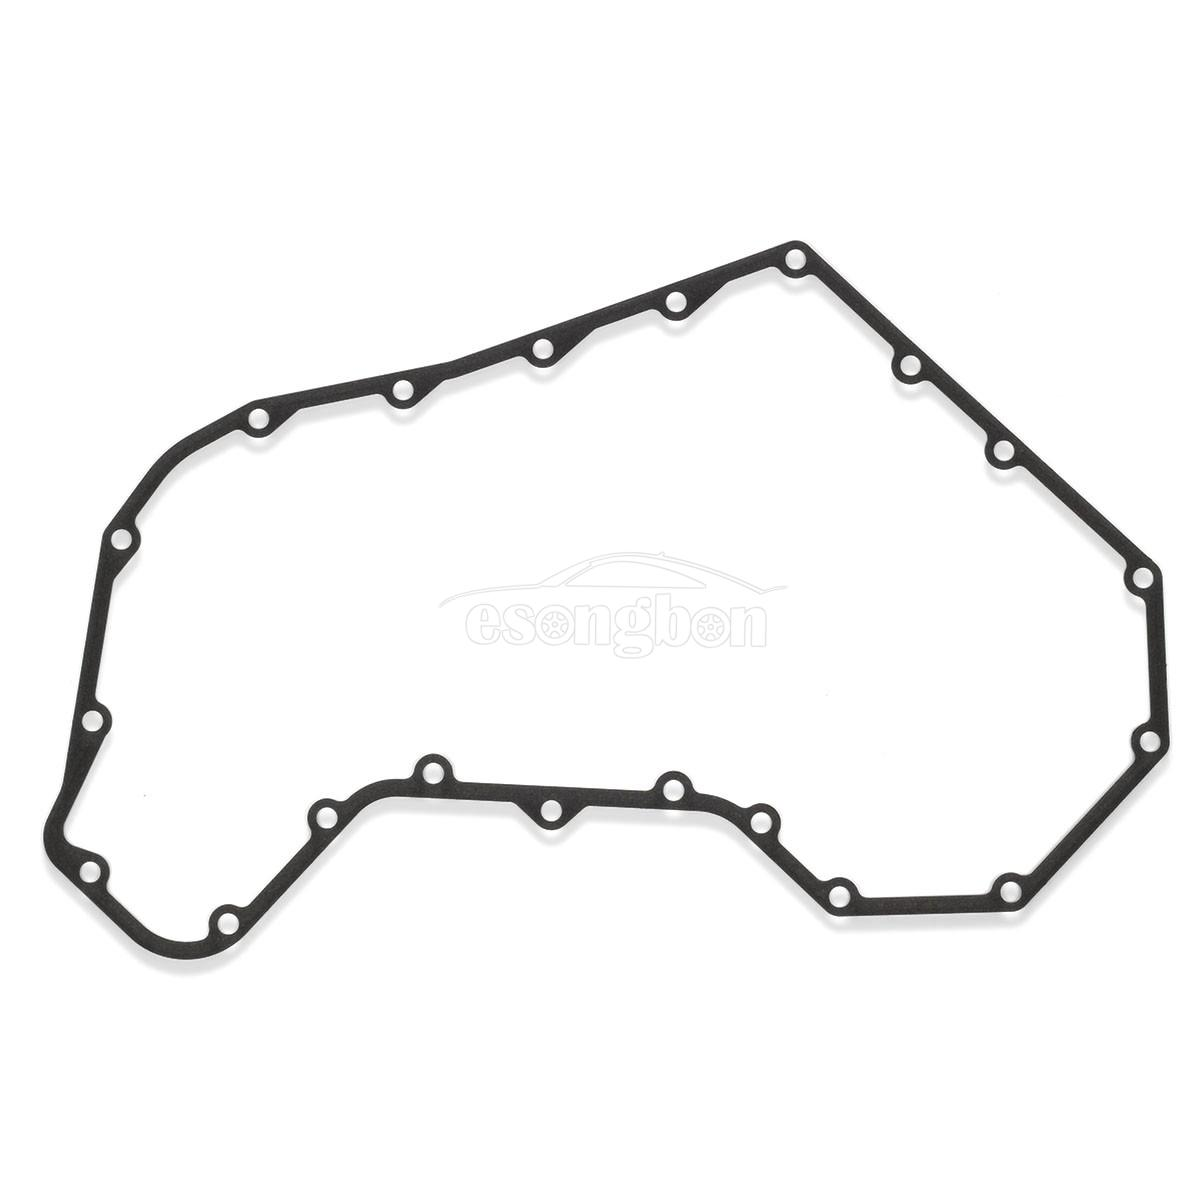 Cummins 4b 4bt 4bta Bottom Gasket Set For Case Backhoe 590sl 590 Turbo Ck 580sk